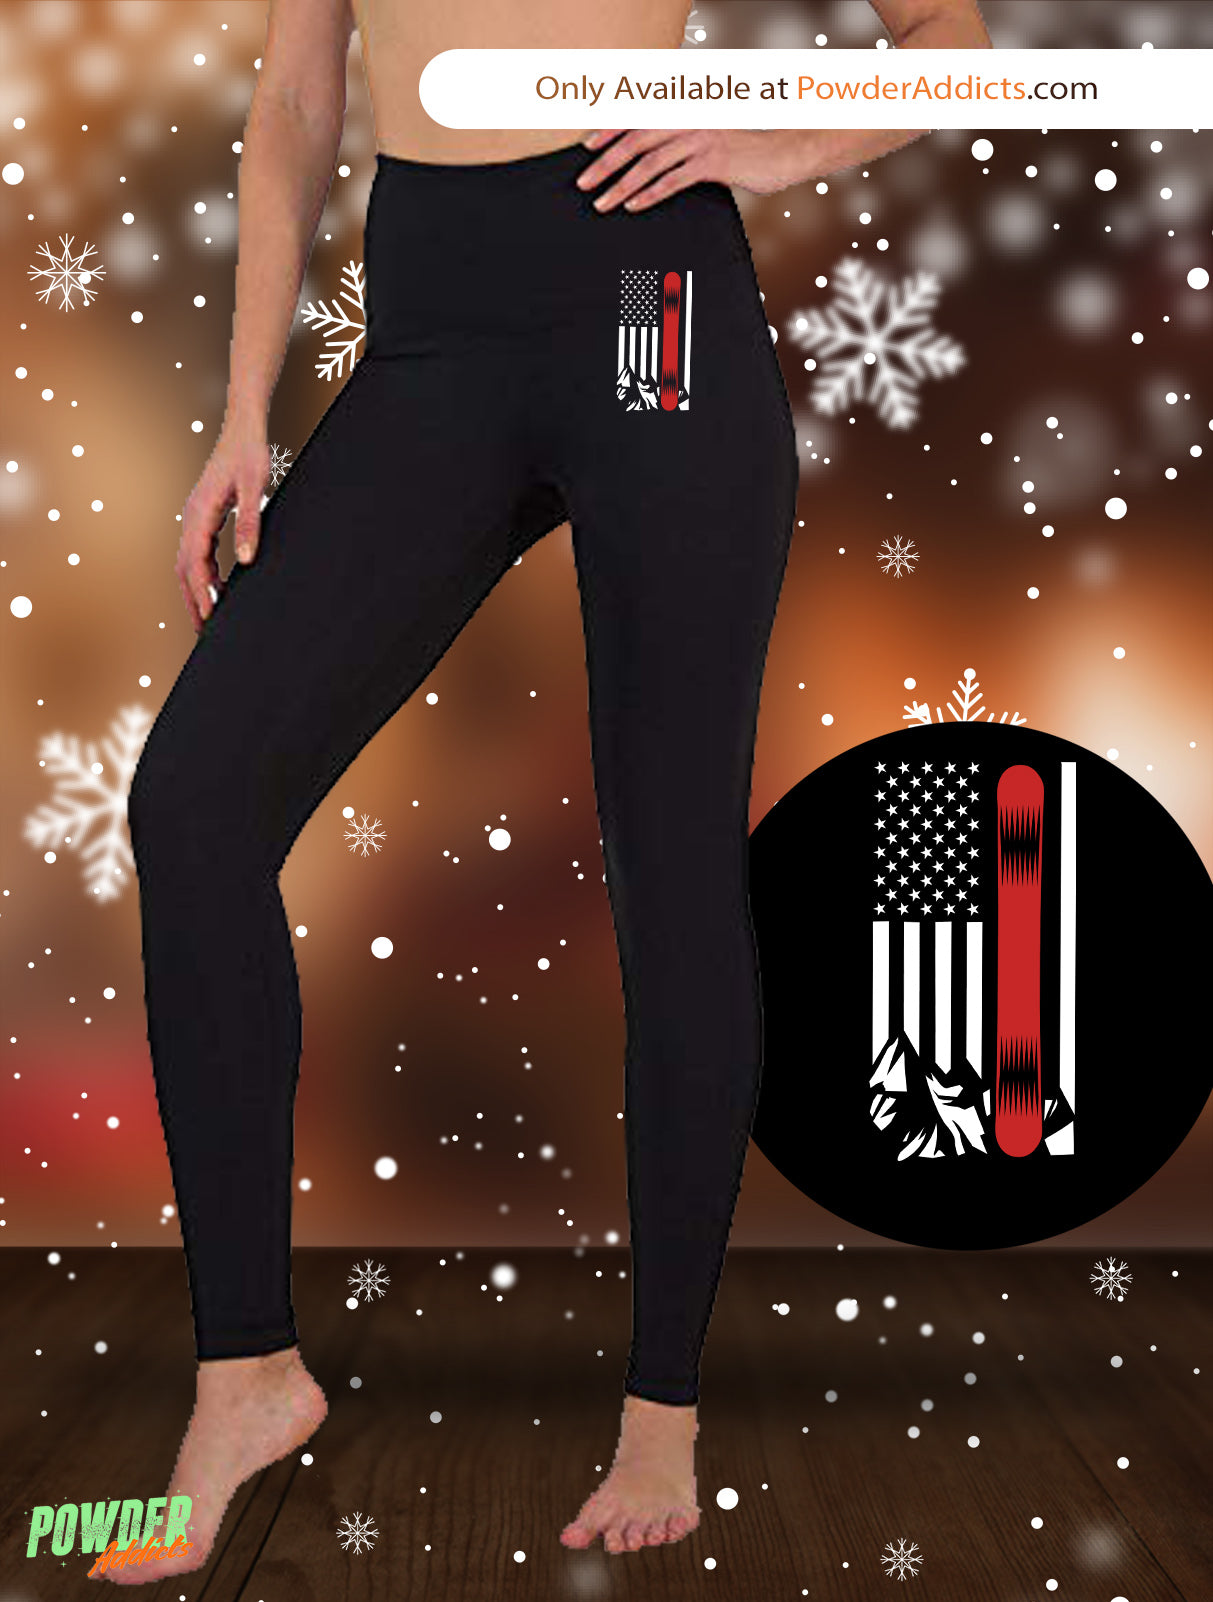 USA Snowboard Flag Thin Red Line Women's Embroidered Leggings - Powderaddicts